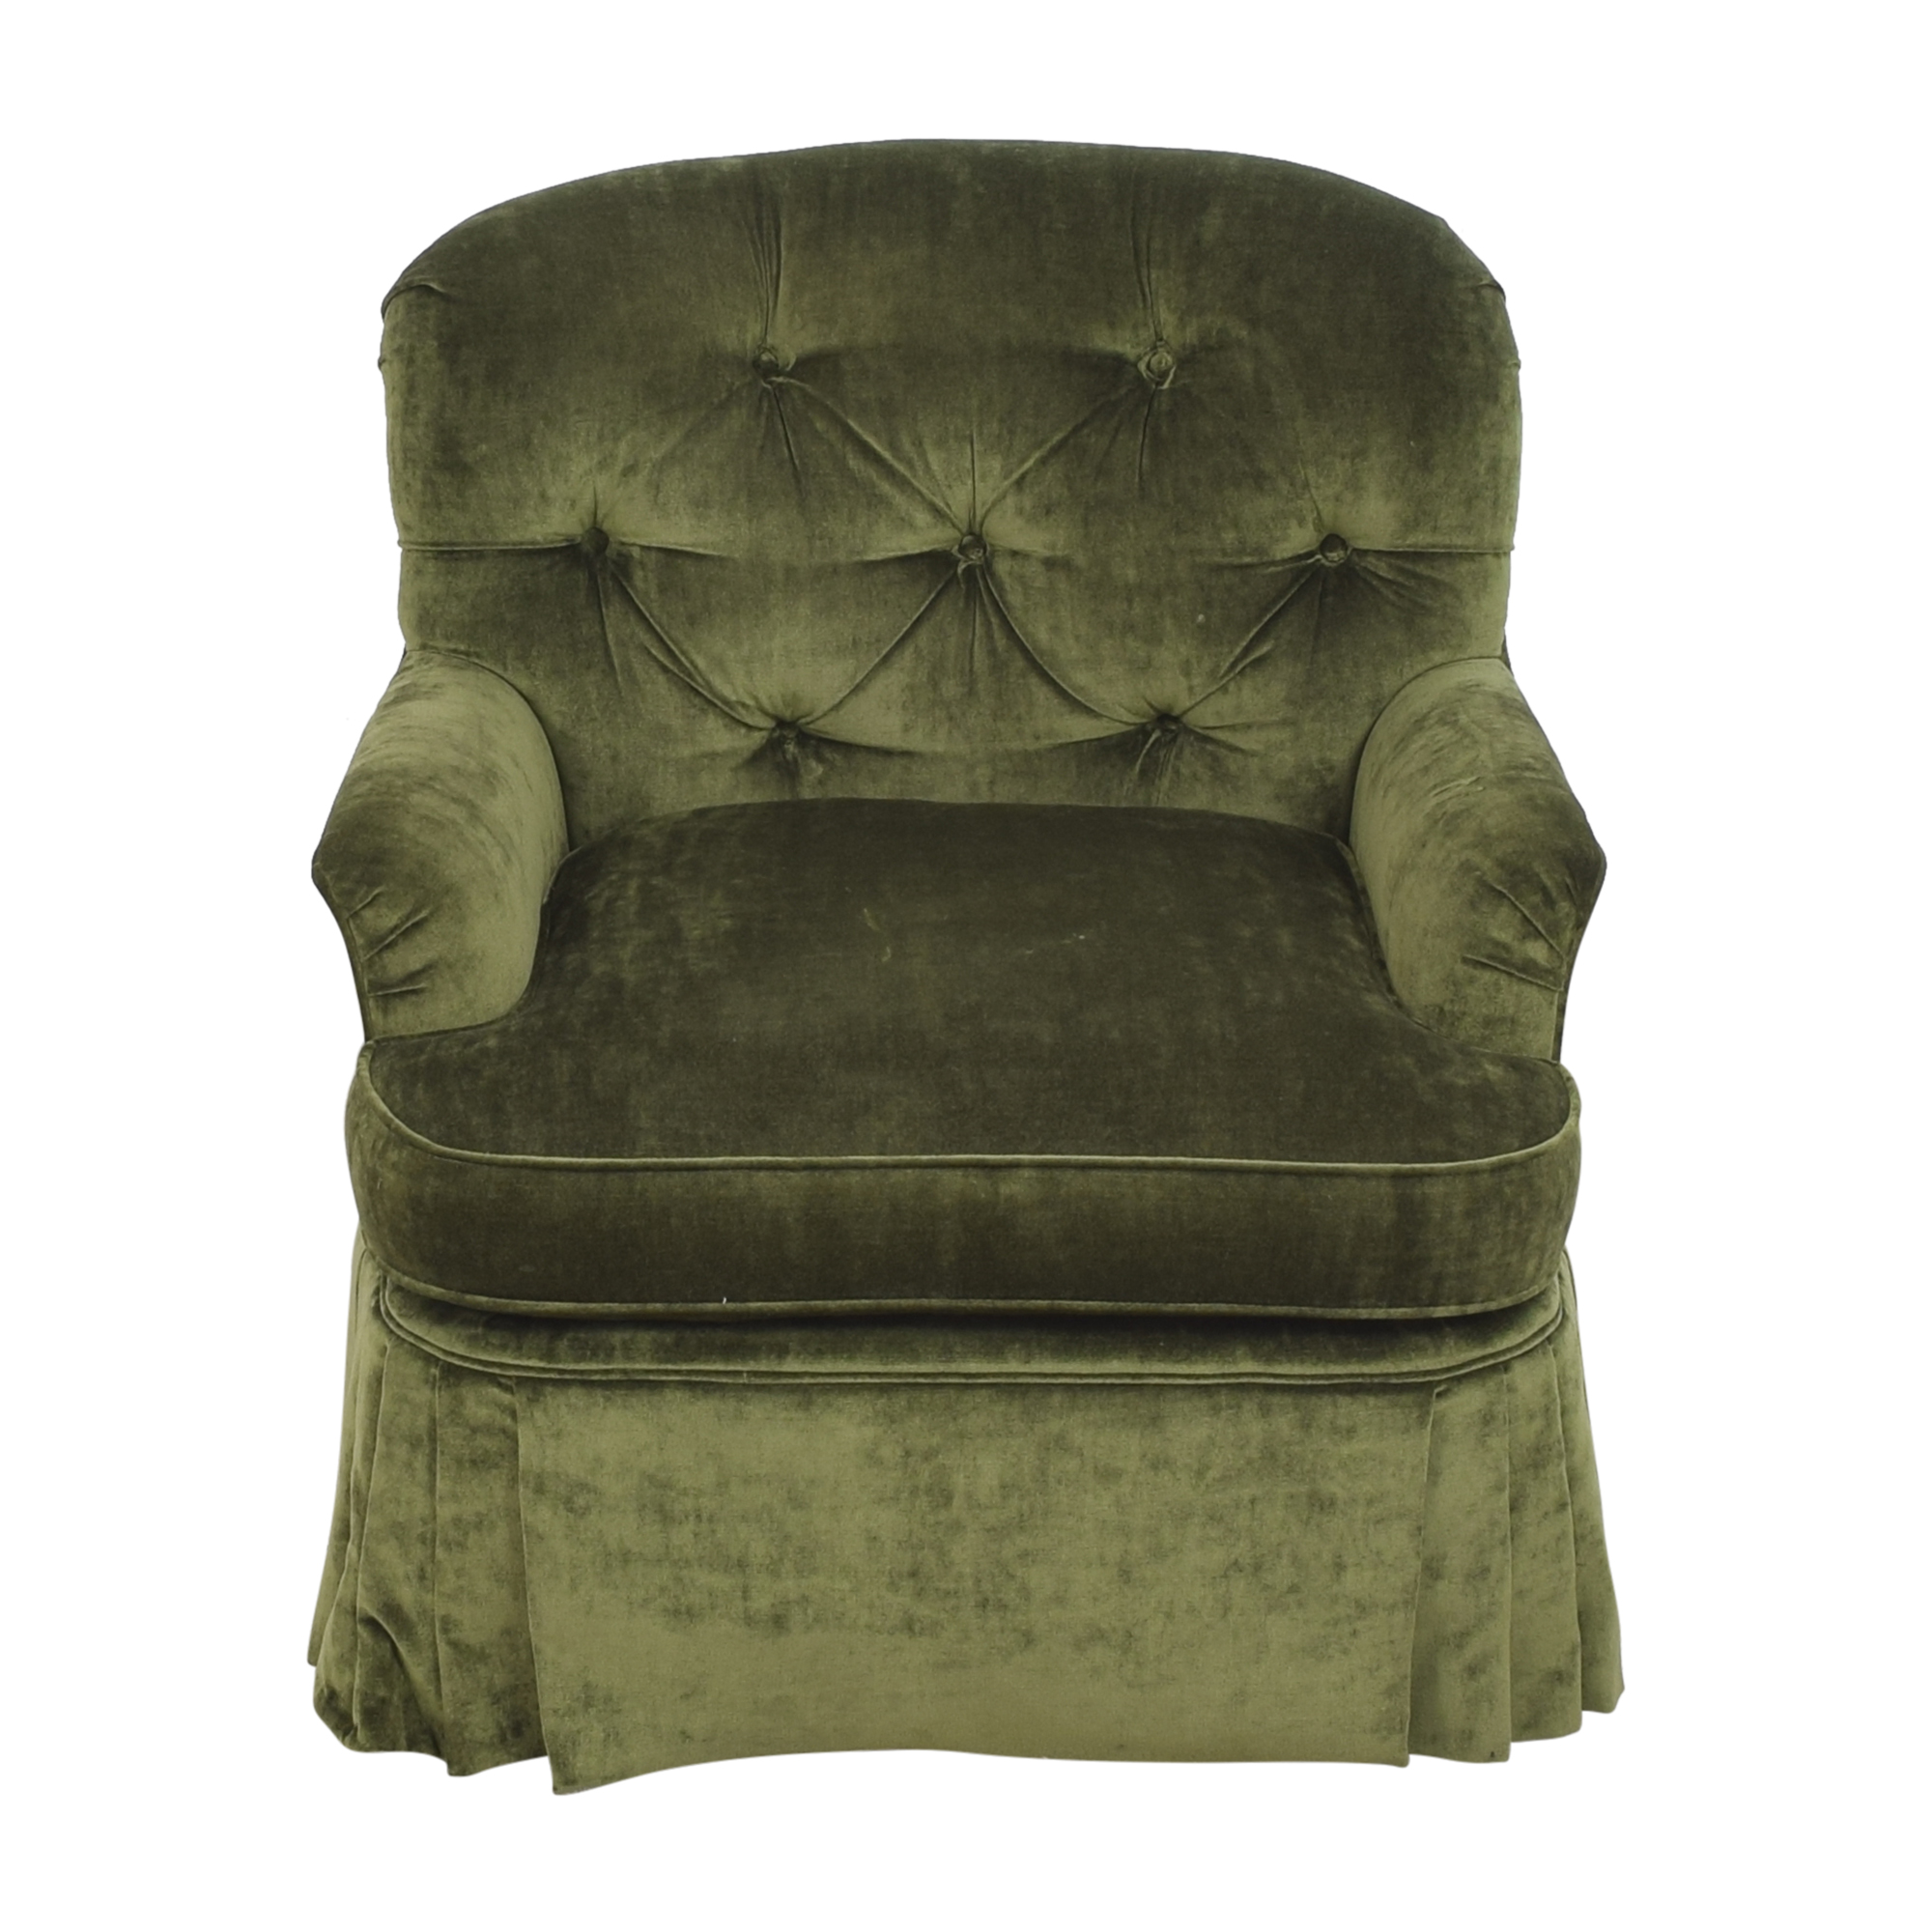 Calico Calico Corners Brandy Wine Design Accent Chair Chairs